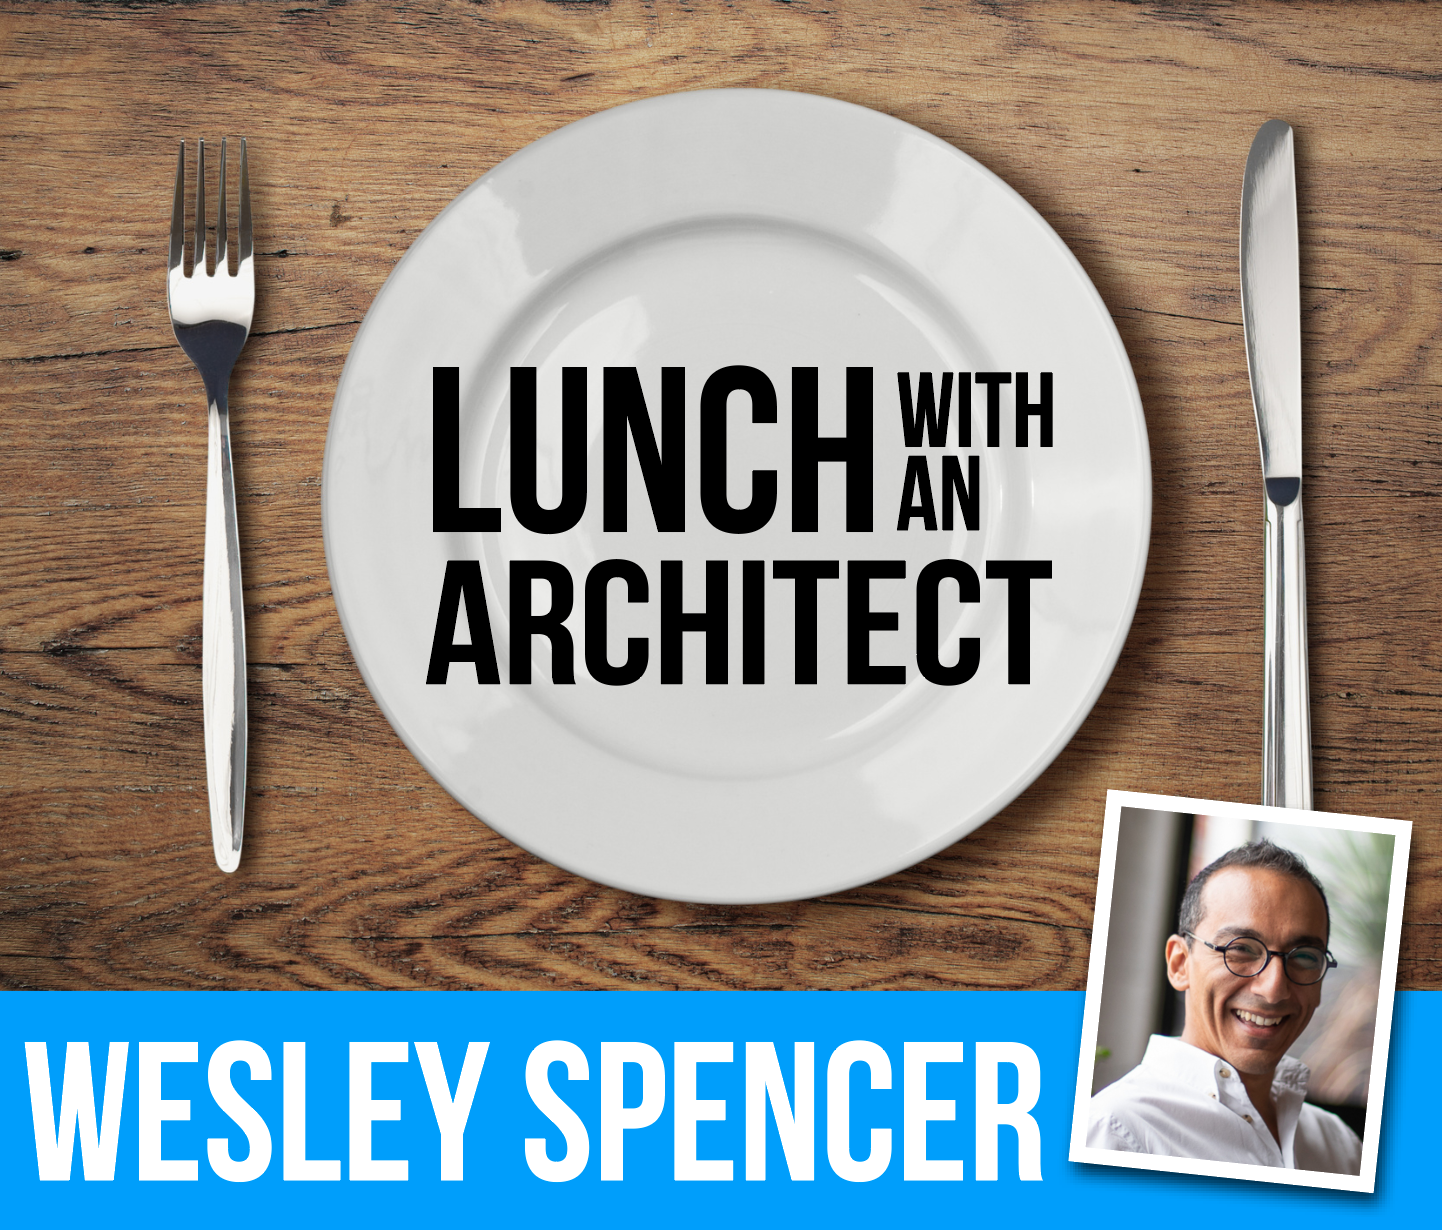 Chicken Wraps and Upside Down Barrel Vaults with Wesley Spencer